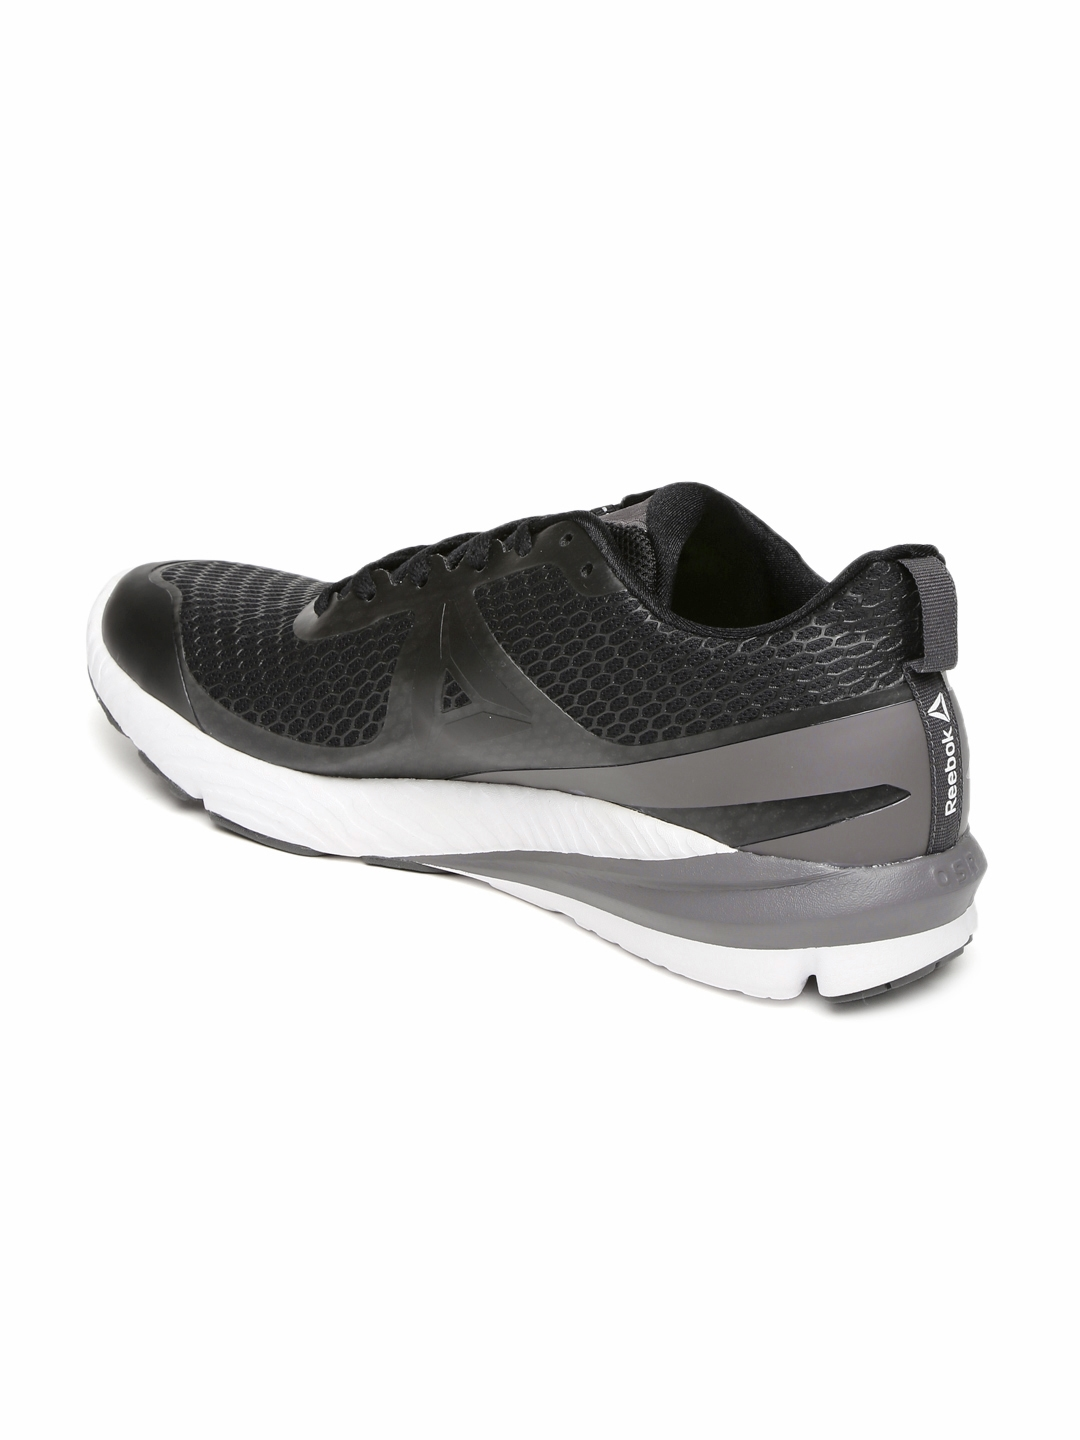 4a16b8f9a719 Buy Reebok Men Black OSR Sweet RD Running Shoes - Sports Shoes for ...